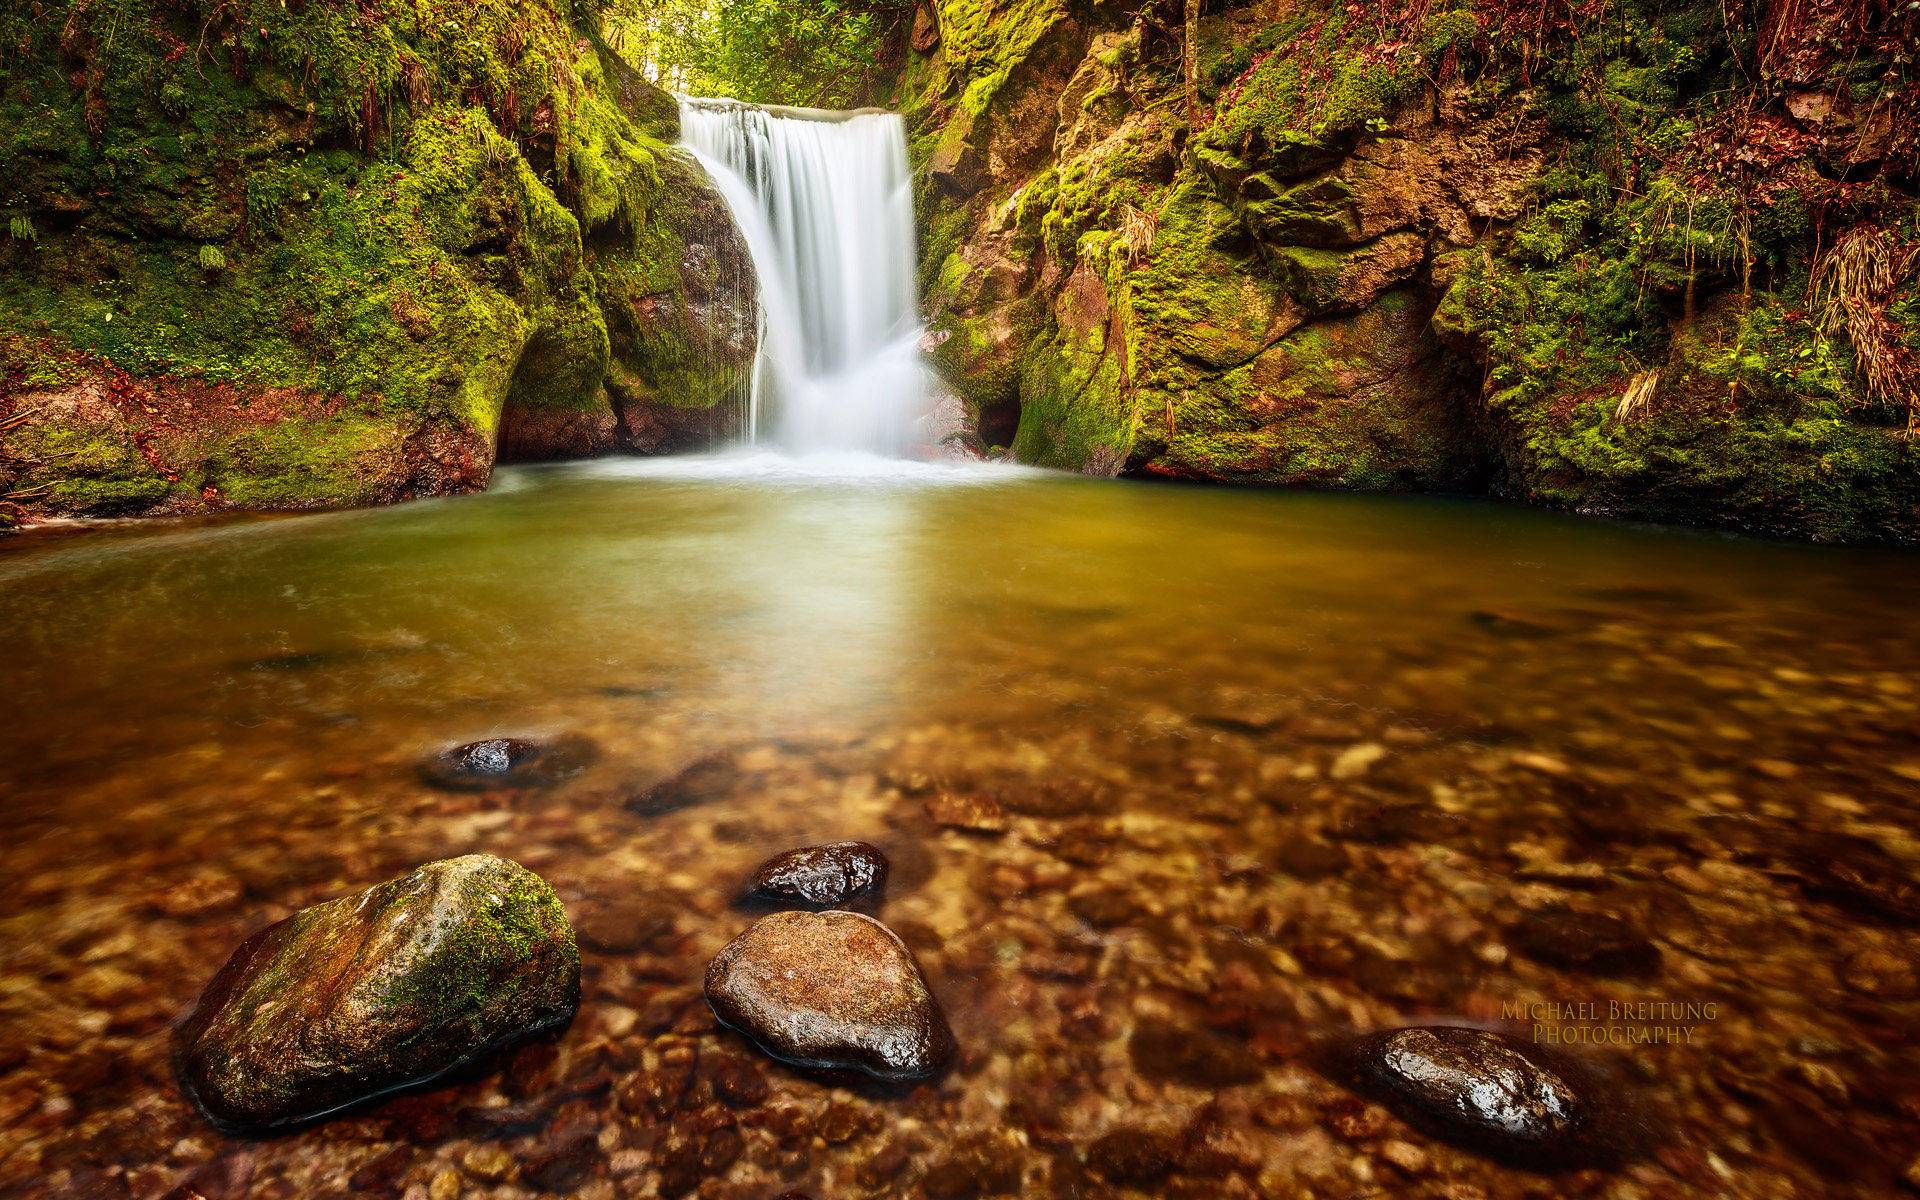 Wallpaper download free image search hd - Nature Waterfall Wallpapers Full Hd Wallpaper Search Download